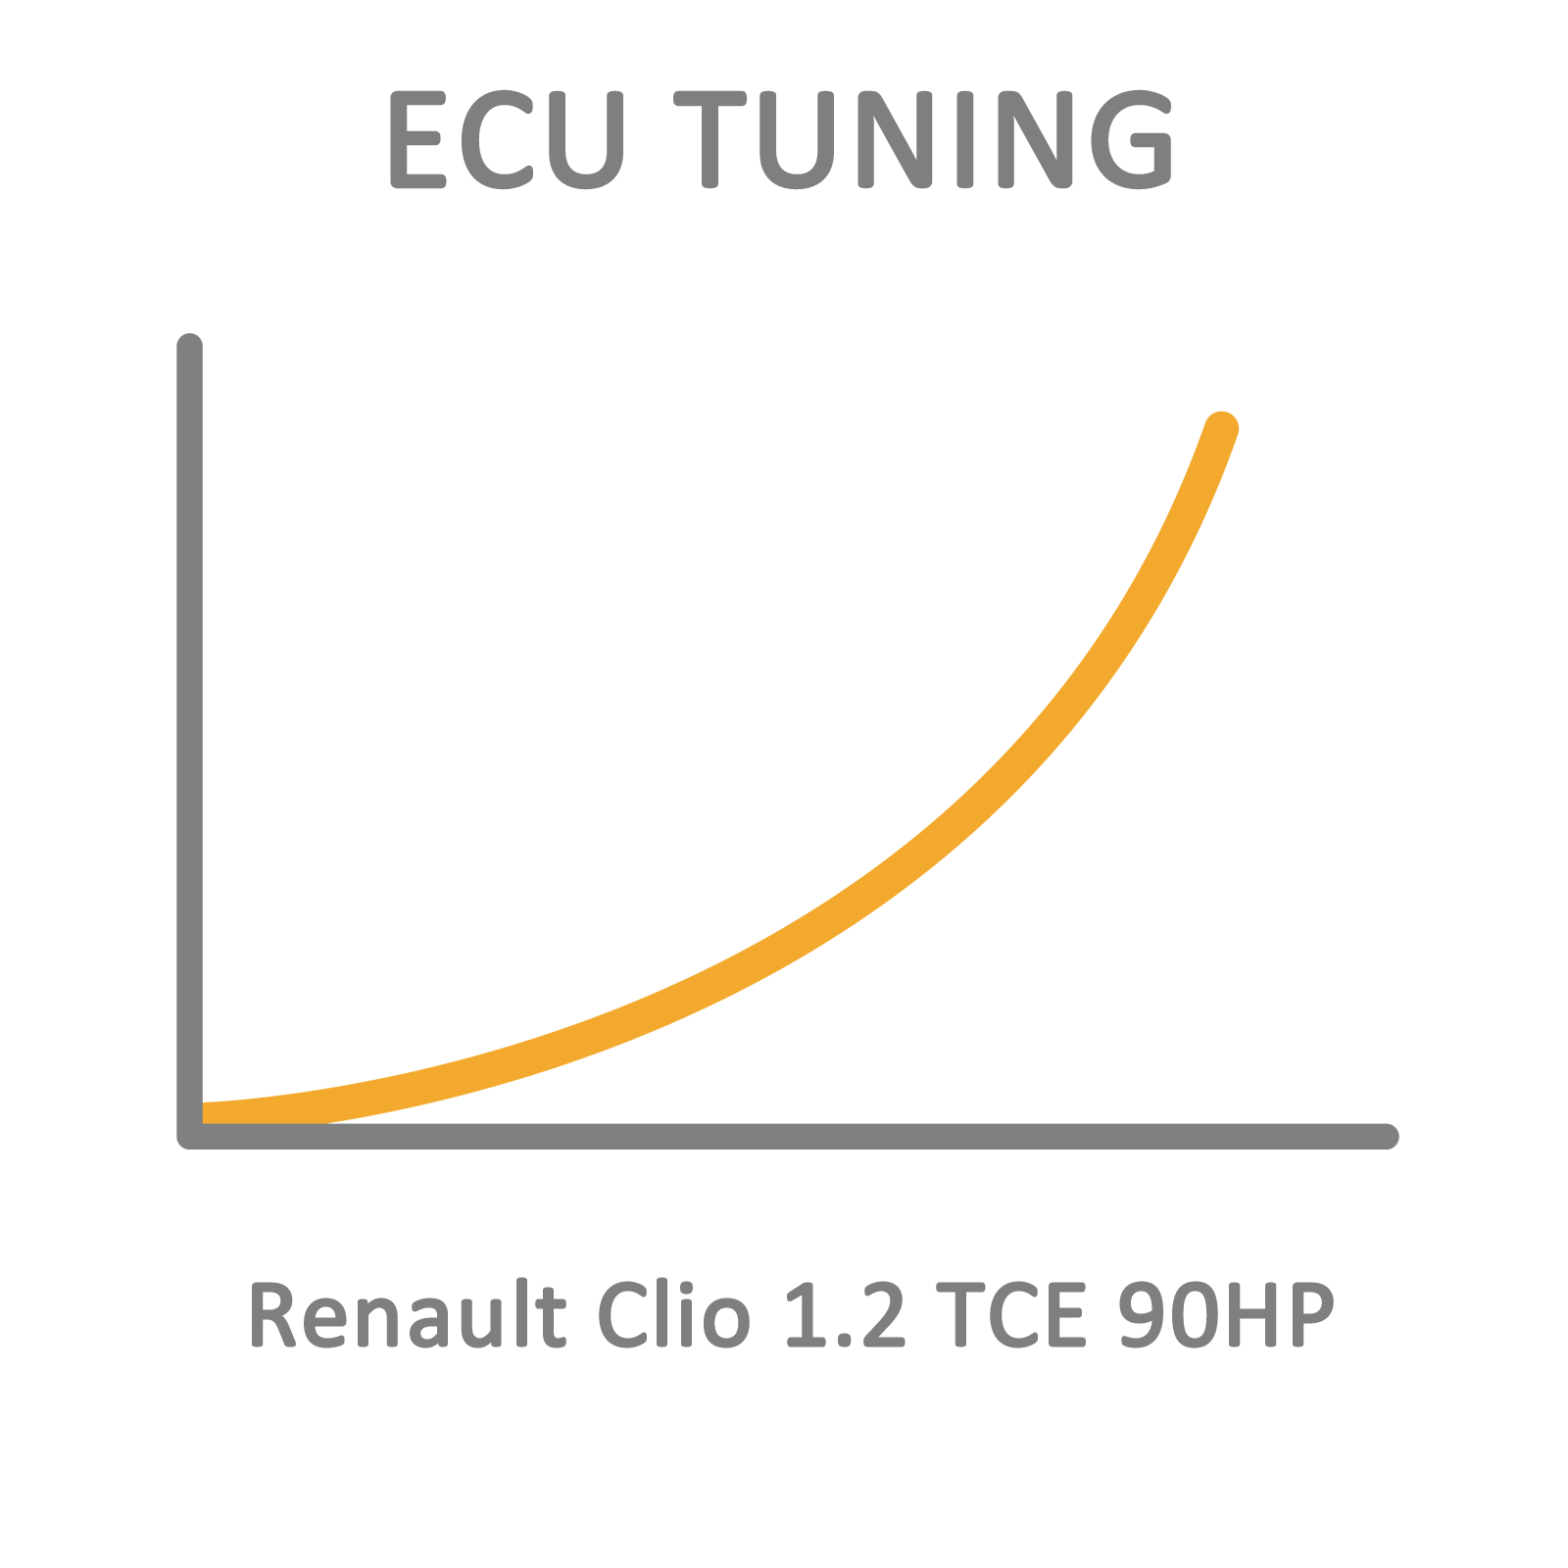 Renault Clio 1.2 TCE 90HP ECU Tuning Remapping Programming